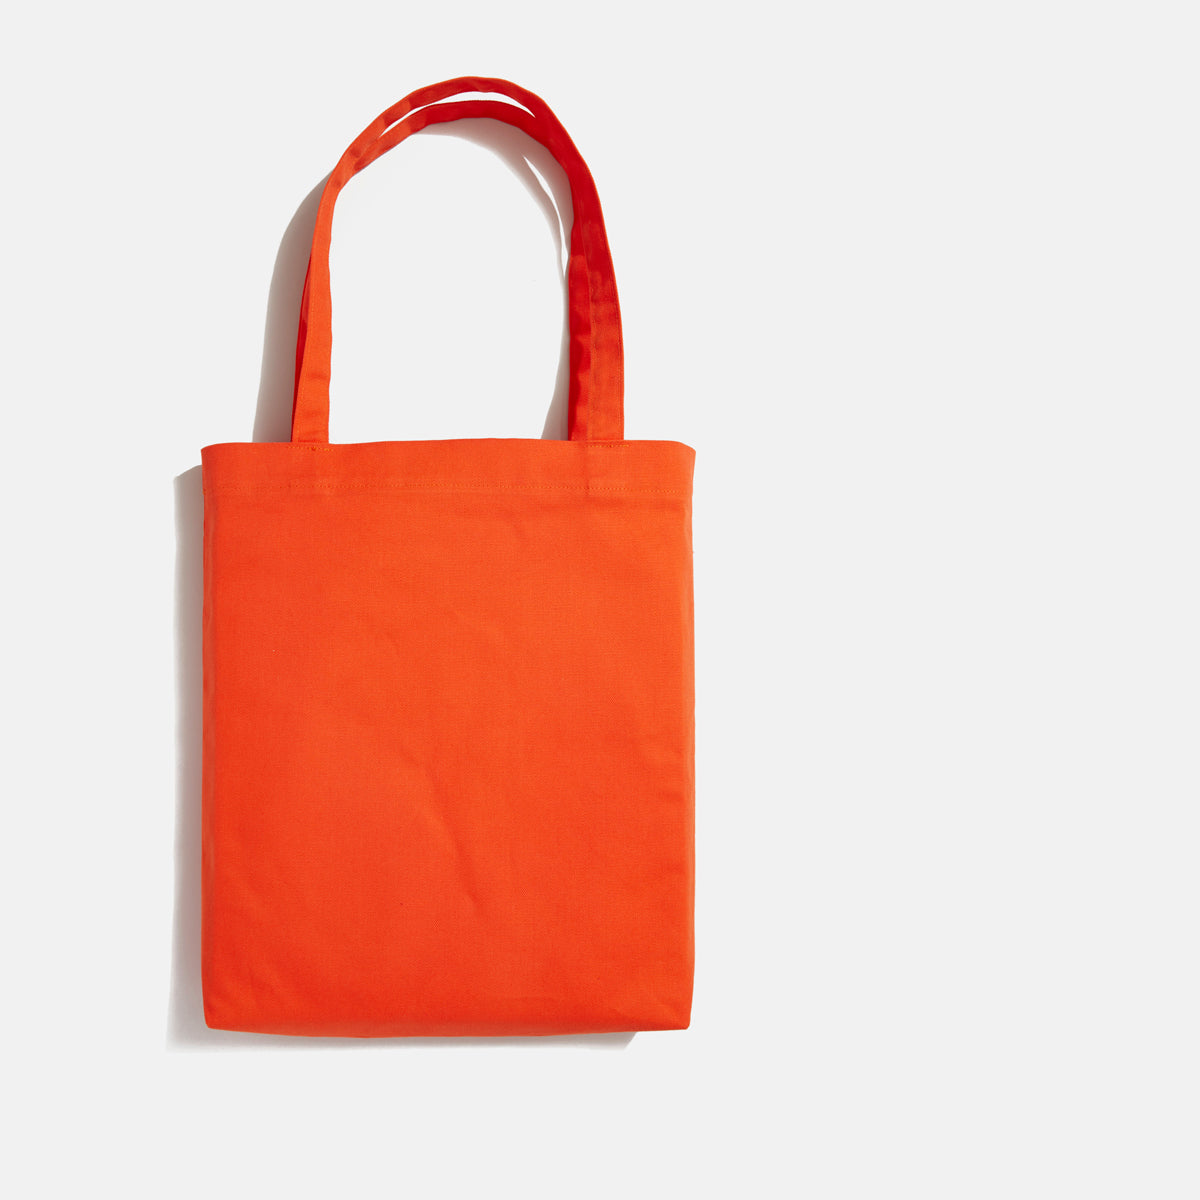 Moyen tote orange blank